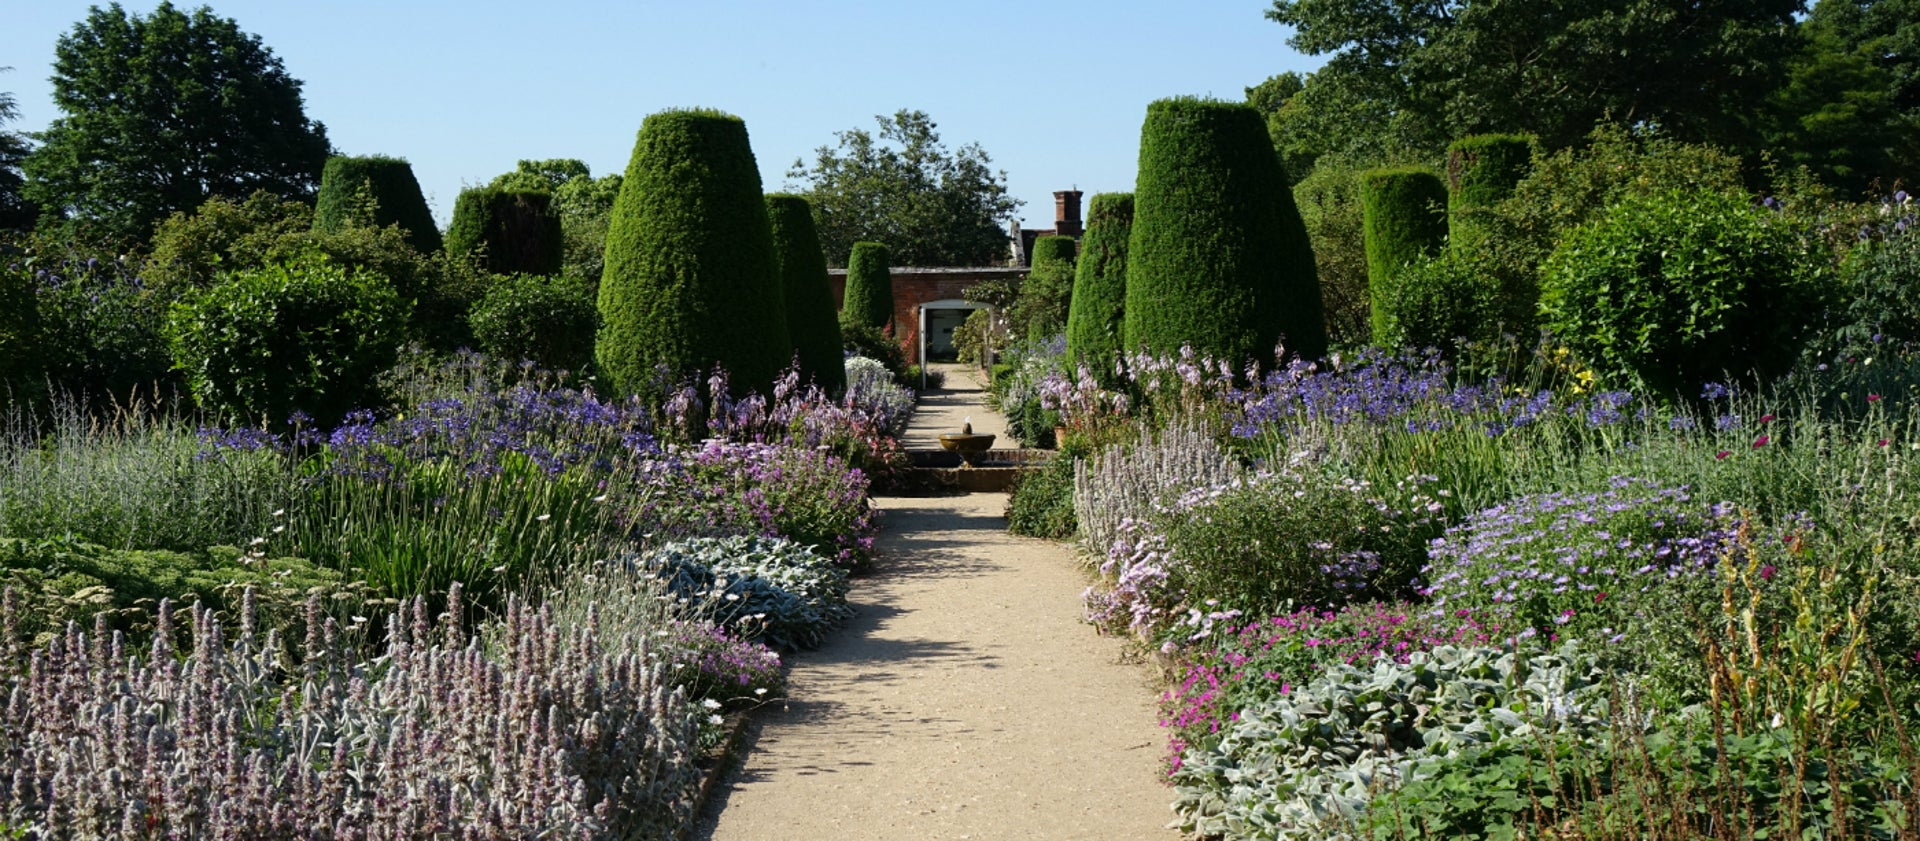 Gardens open to the public in Hampshire the south coast